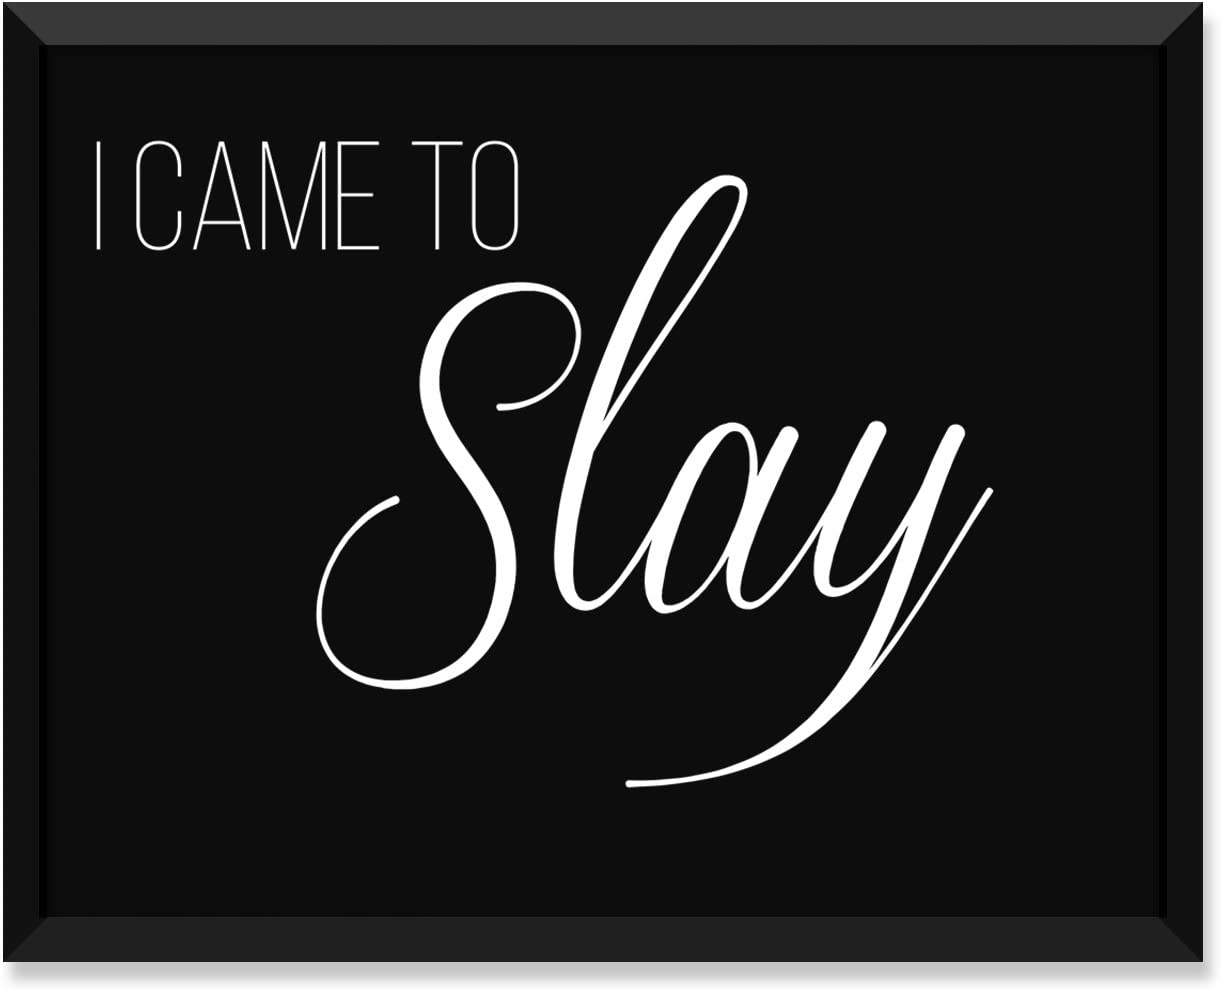 Serif Design Studios Beyonce I Came to Slay, Inspirational Quote, Minimalist Poster, Home Decor, College Dorm Room Decorations, Wall Art